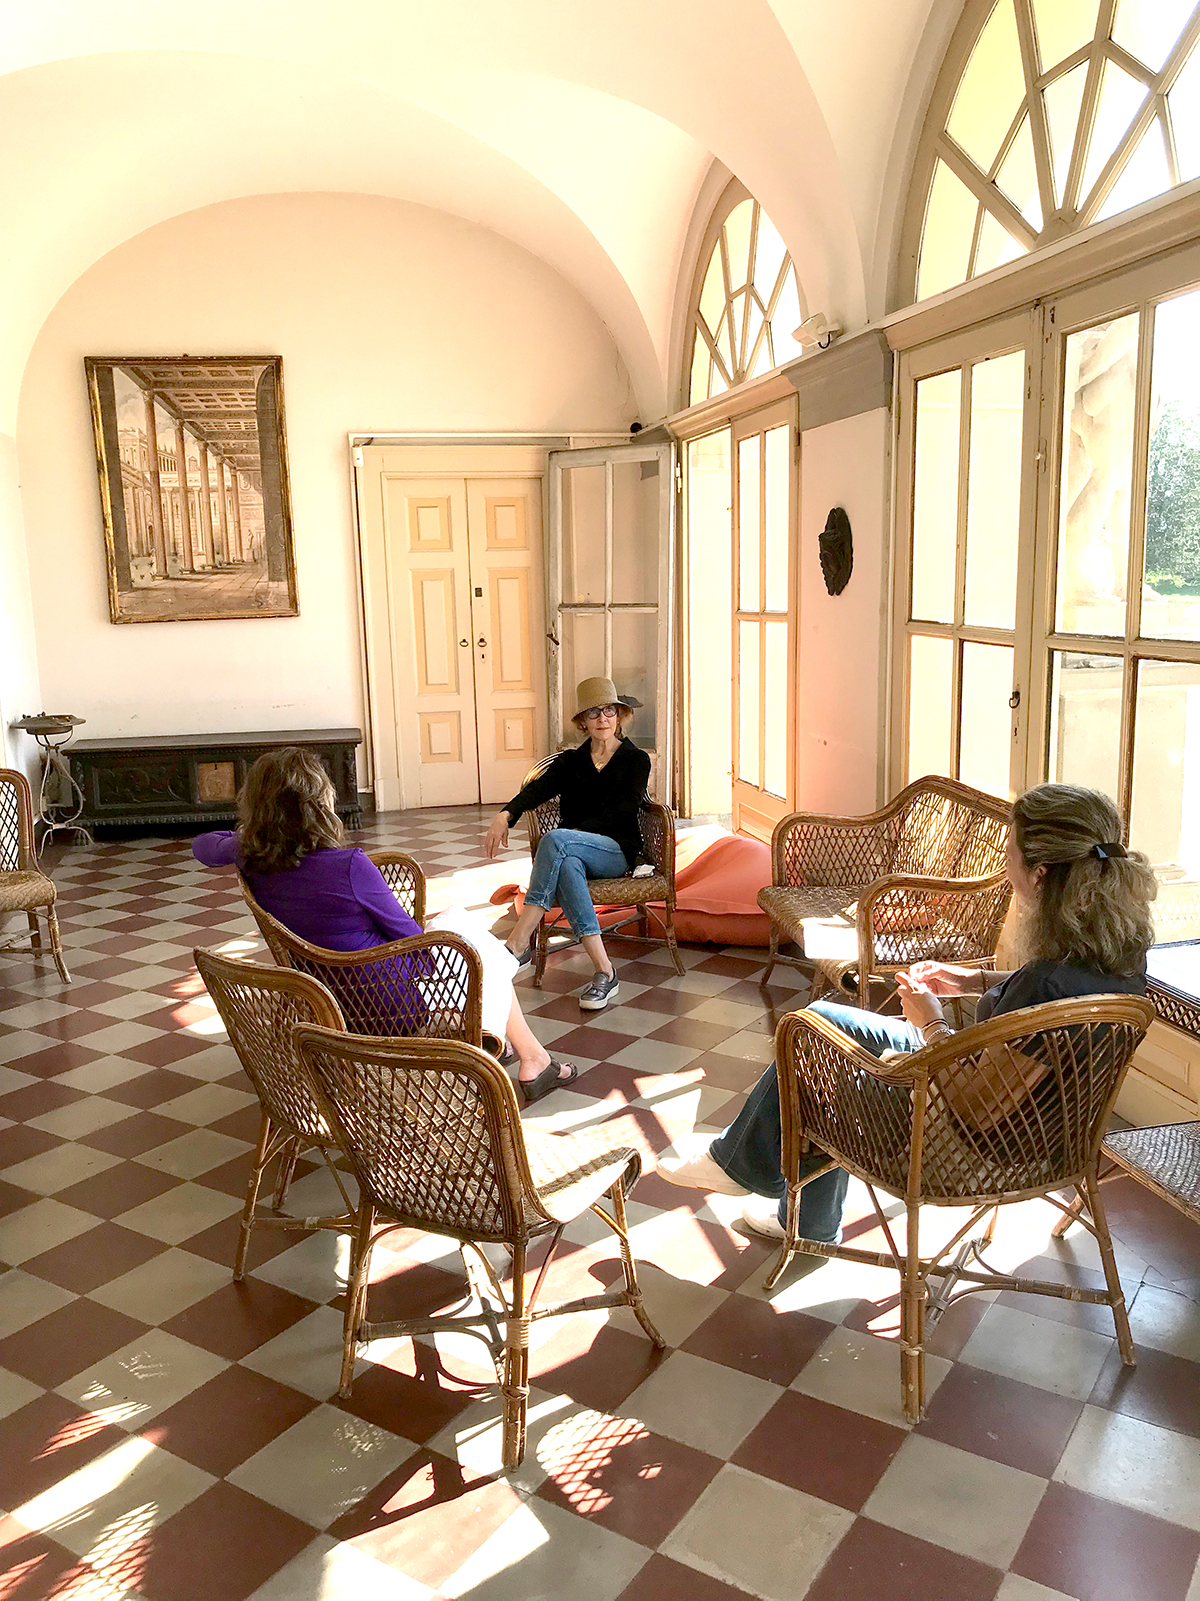 Conversation in the loggia with Carola, the owner.